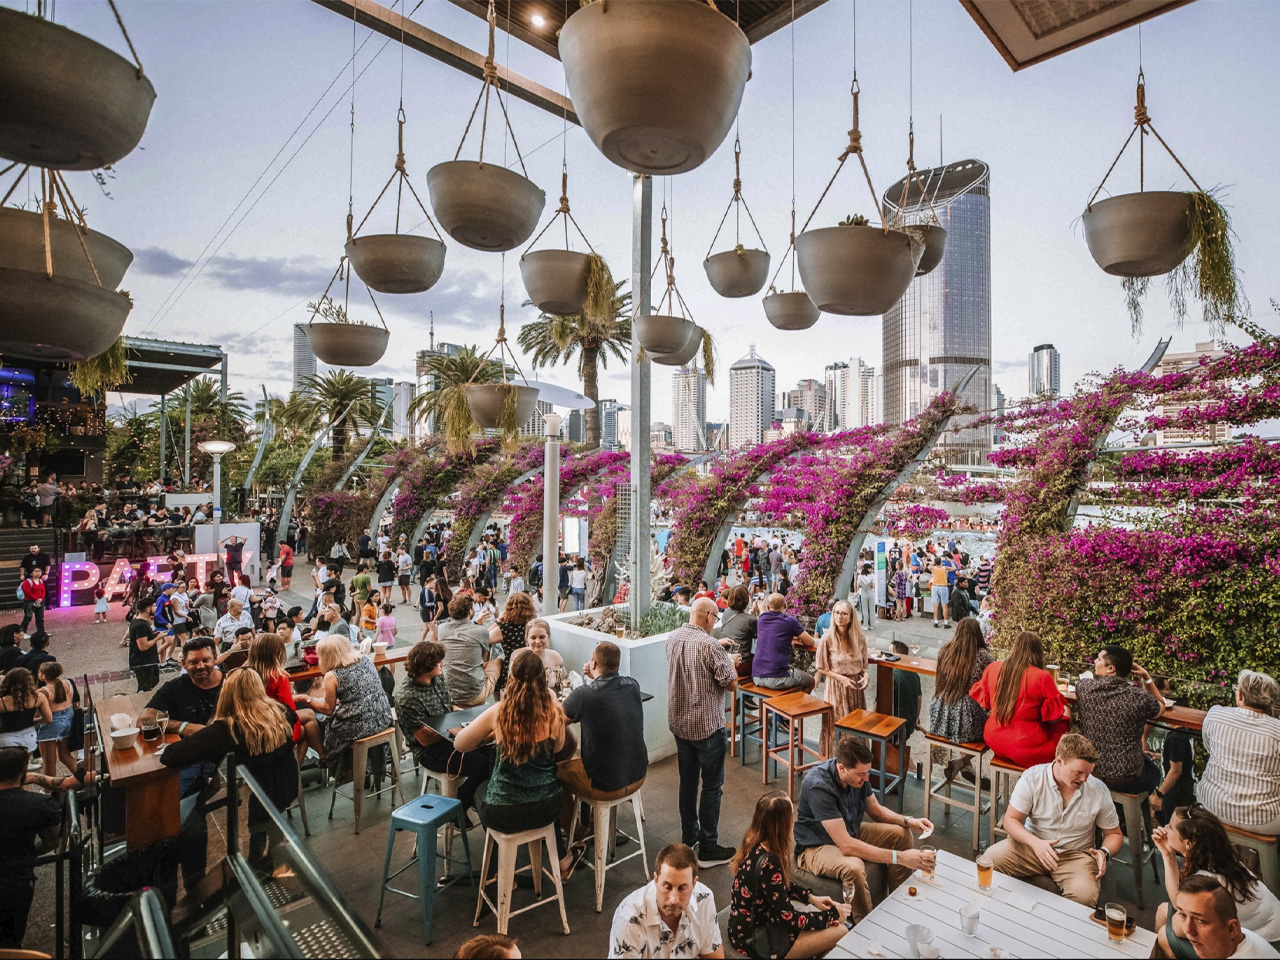 The Lookout venue with hanging pots and crowd overlooking city